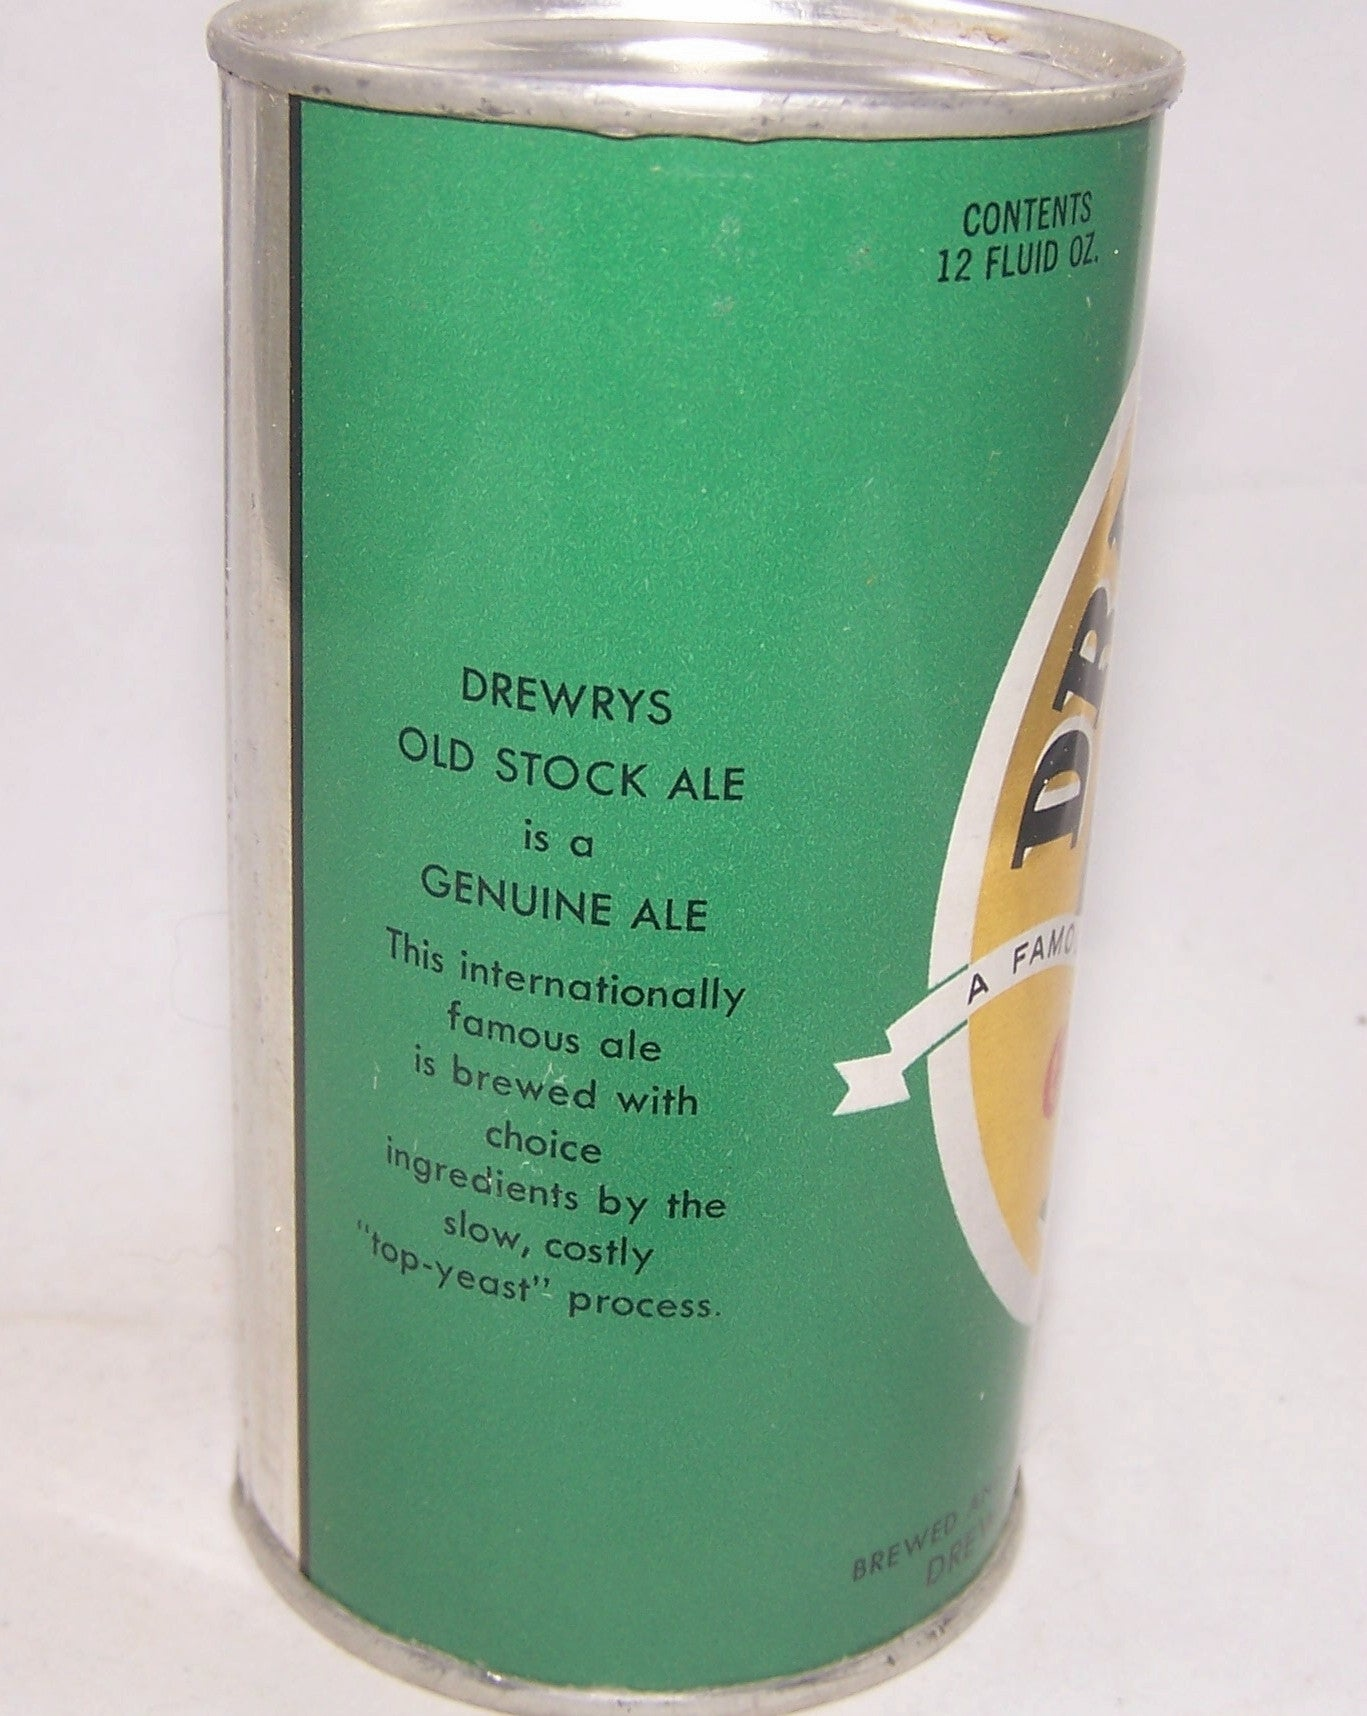 Drewrys Old Stock Ale IRTP, USBC 55-26, Grade A1+ Sold on 06/29/17